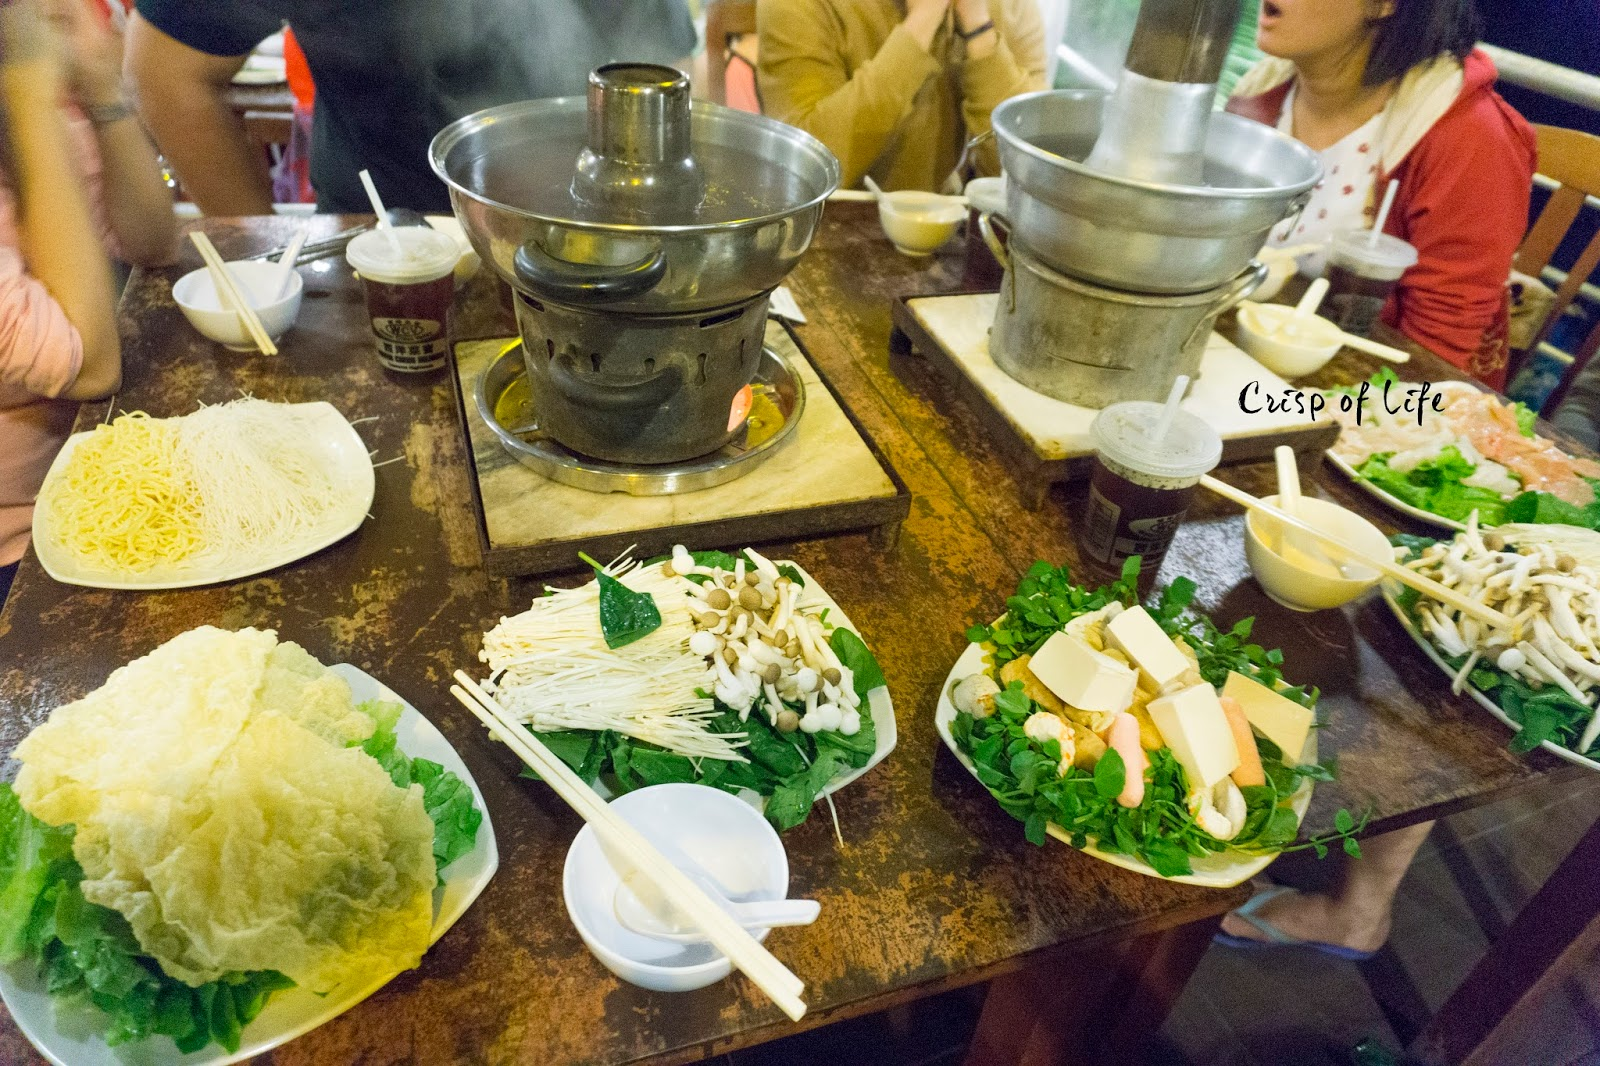 Water Crest Steamboat Restaurant @ Cameron Highlands, Pahang